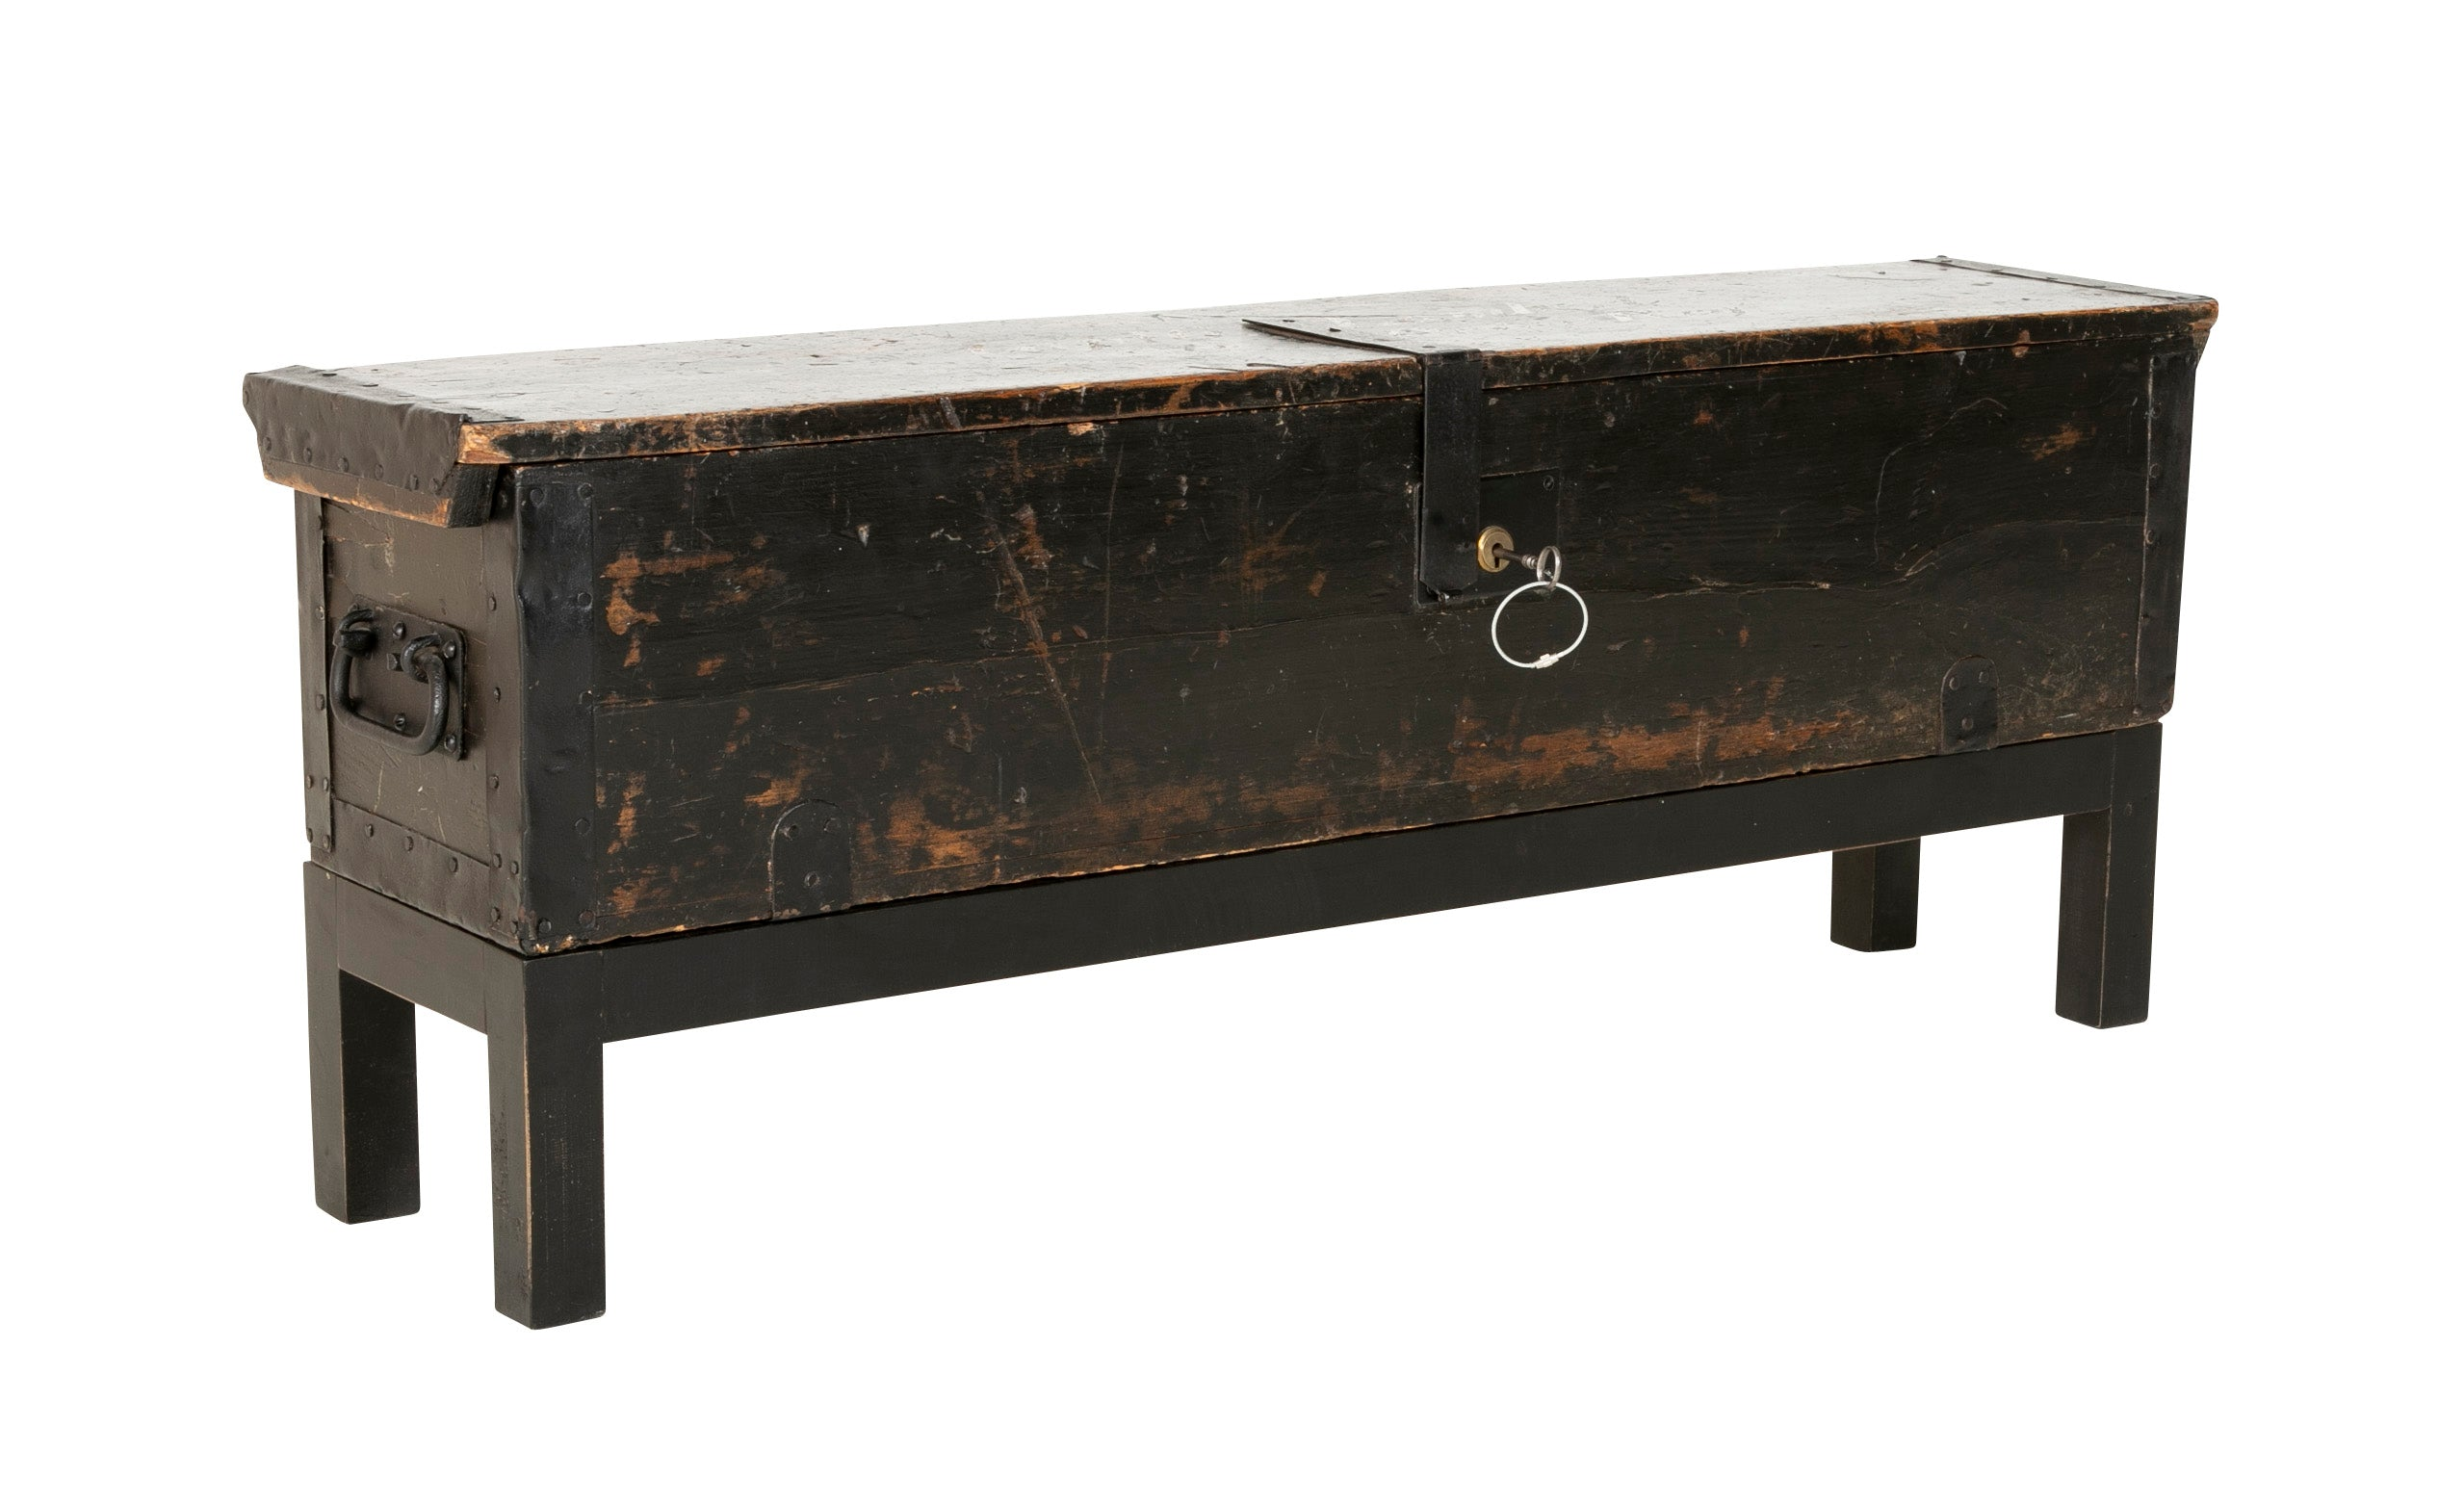 Late 19th Century British Officer's Campaign Bed with Original Storage Chest